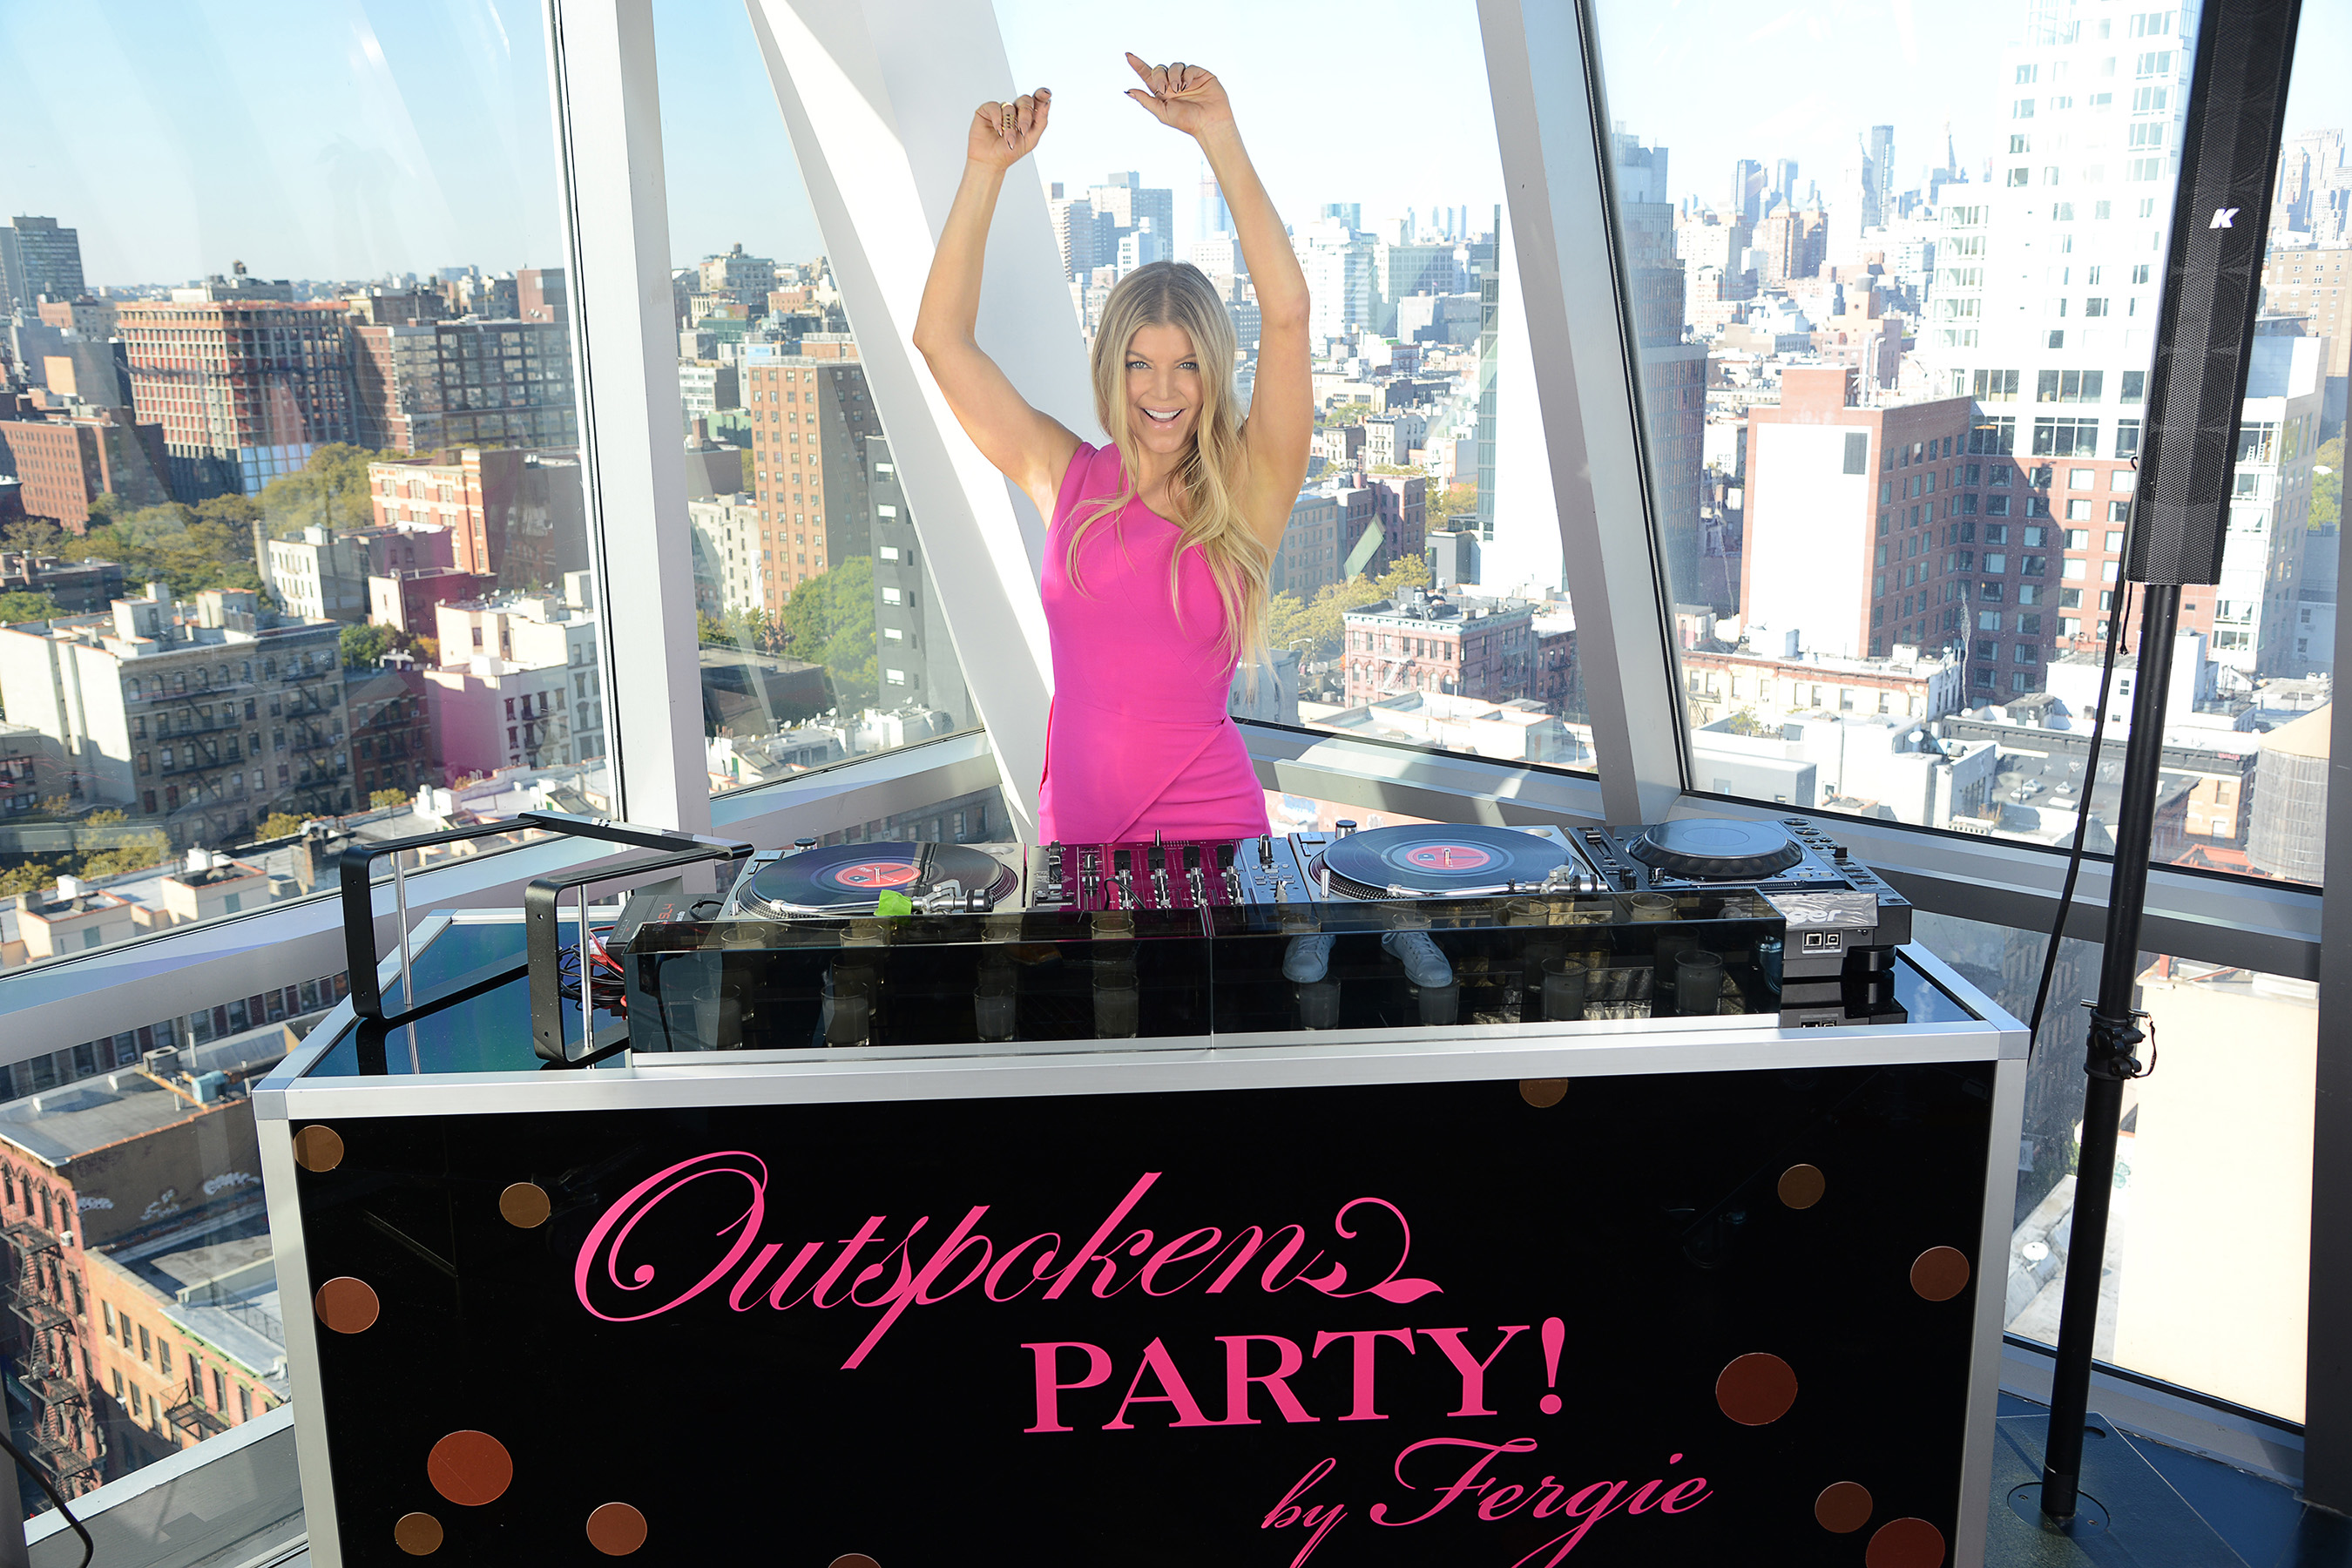 Global Brand Ambassador Fergie hits the DJ booth in New York City at the launch of the her new Avon fragrance, Outspoken Party! by Fergie